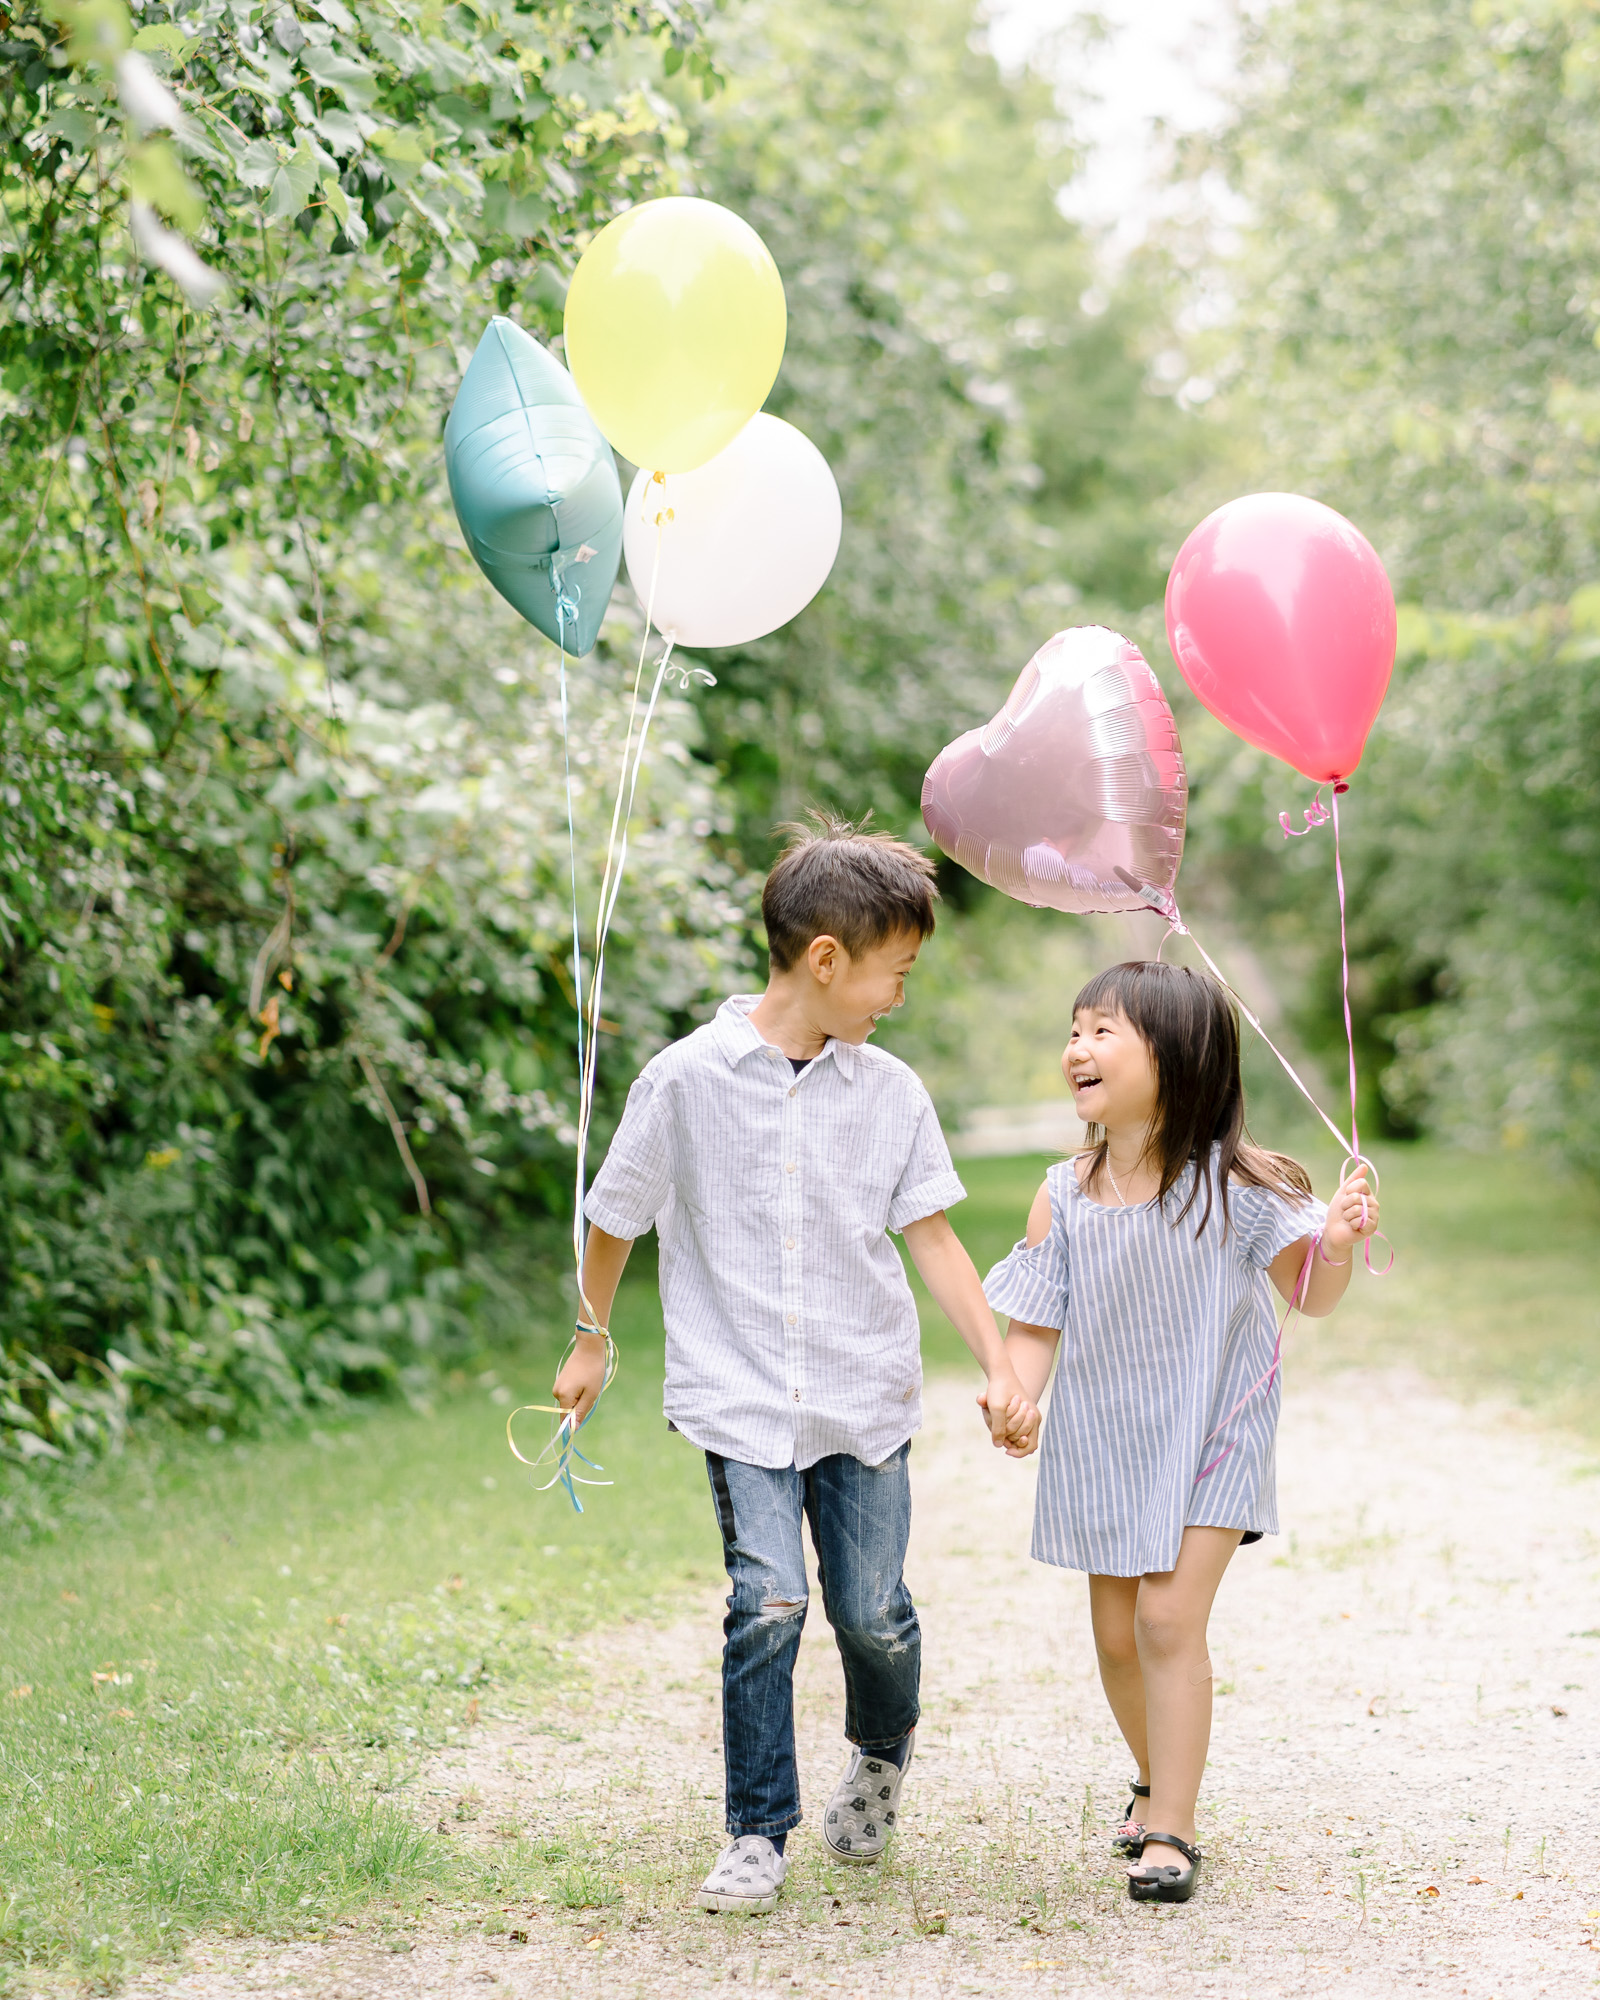 Brother and sister walking with balloons